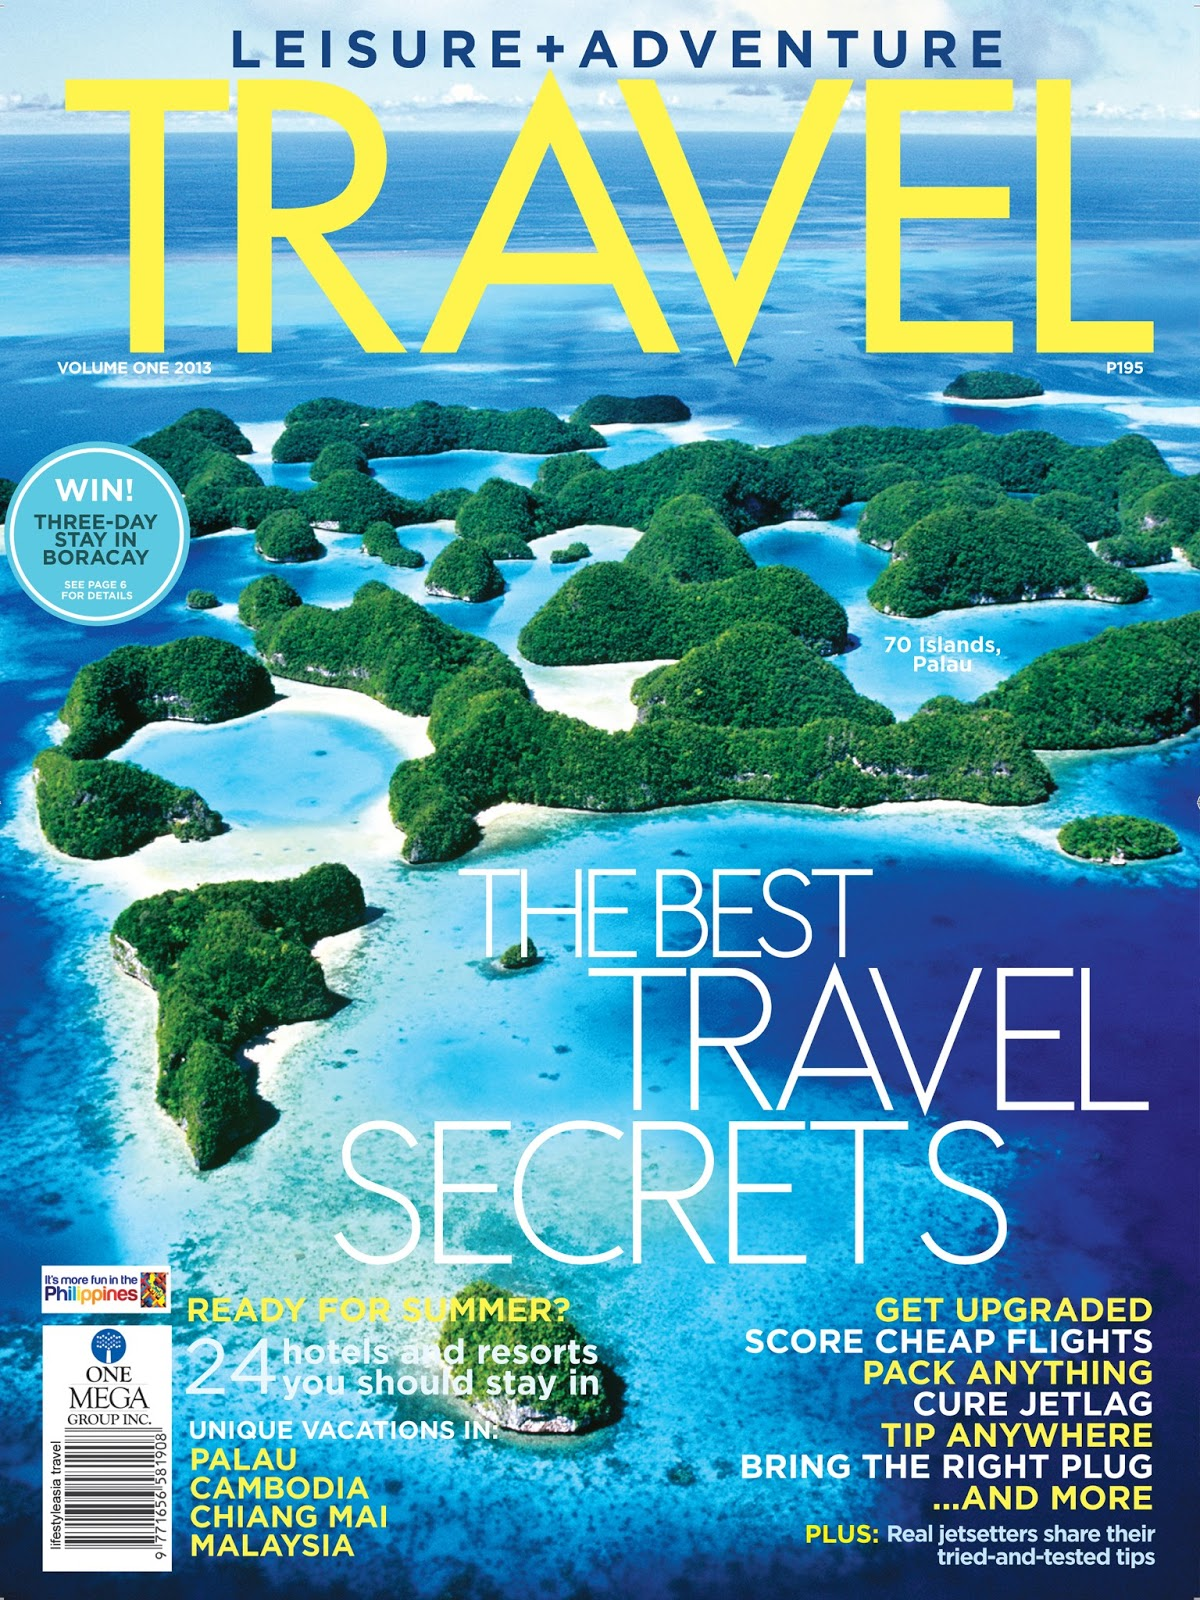 Travel Magazine Launches Its Travel Now Campaign Wazzup